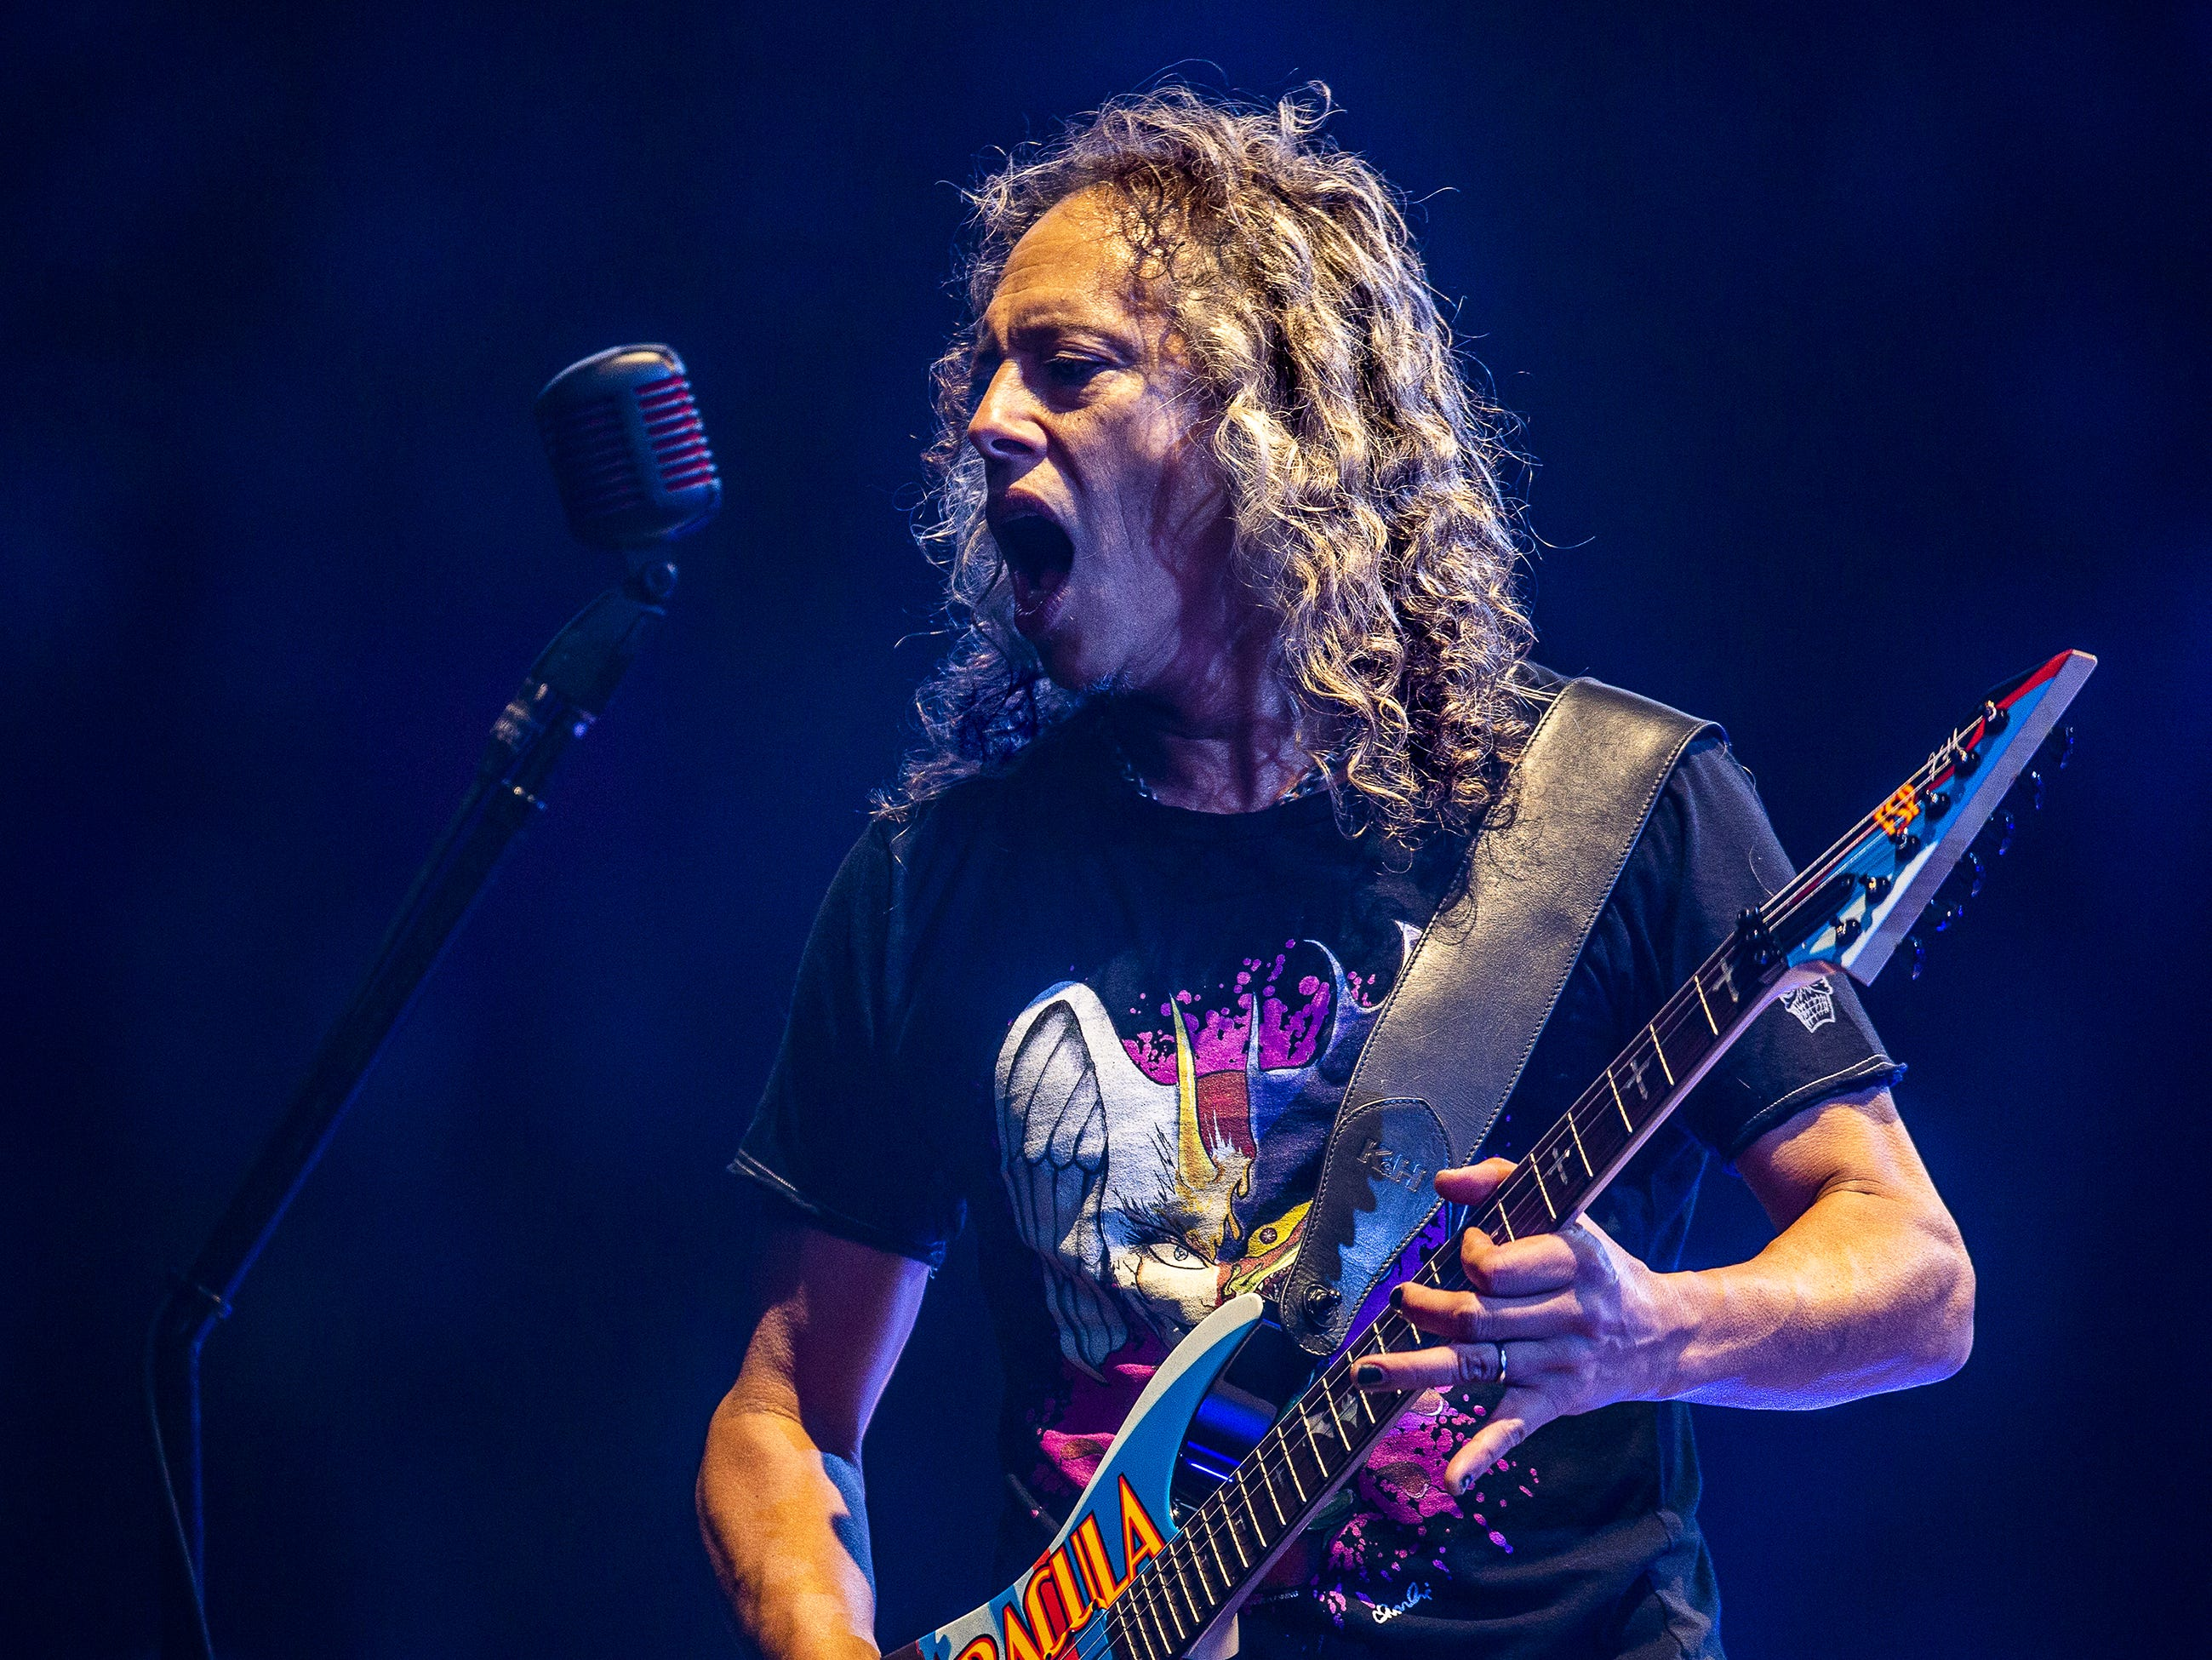 Kirk Hammett, Metallica's lead guitarist, performs at the KFC Yum Center in downtown Louisville, Ky. on Saturday, March 9, 2019.